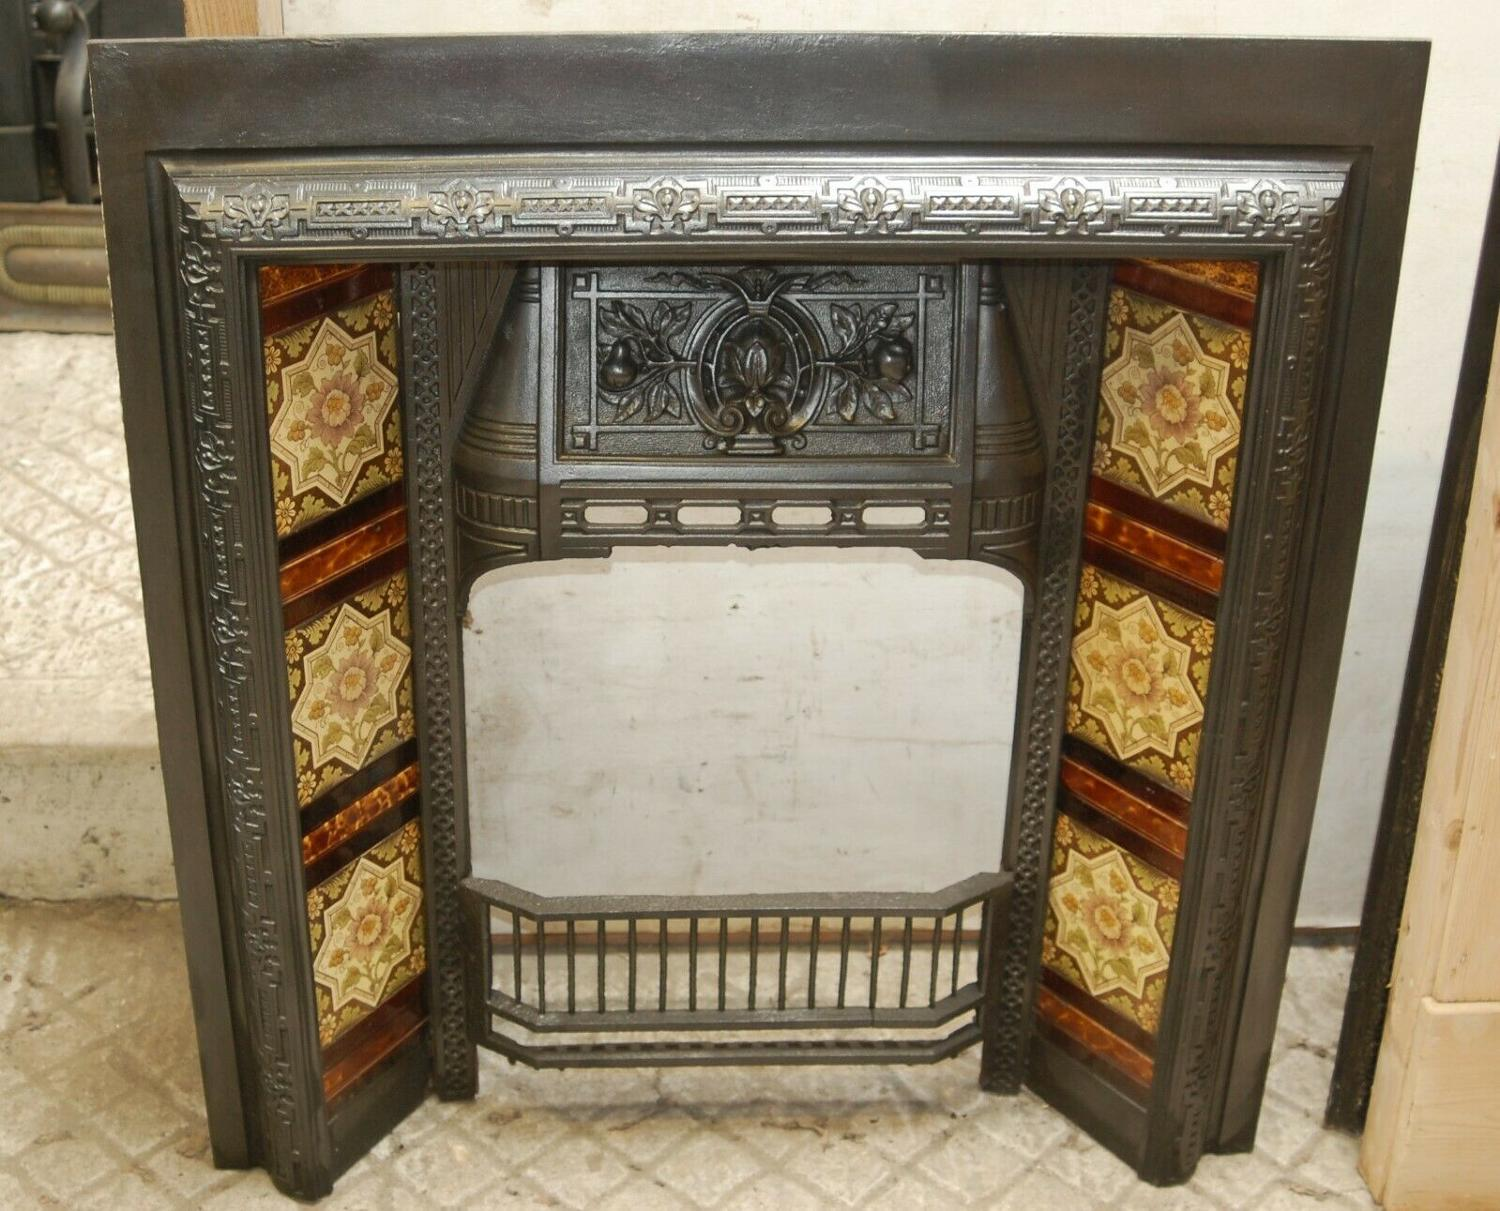 FI0034 VICTORIAN TILED CAST IRON FIRE INSERT